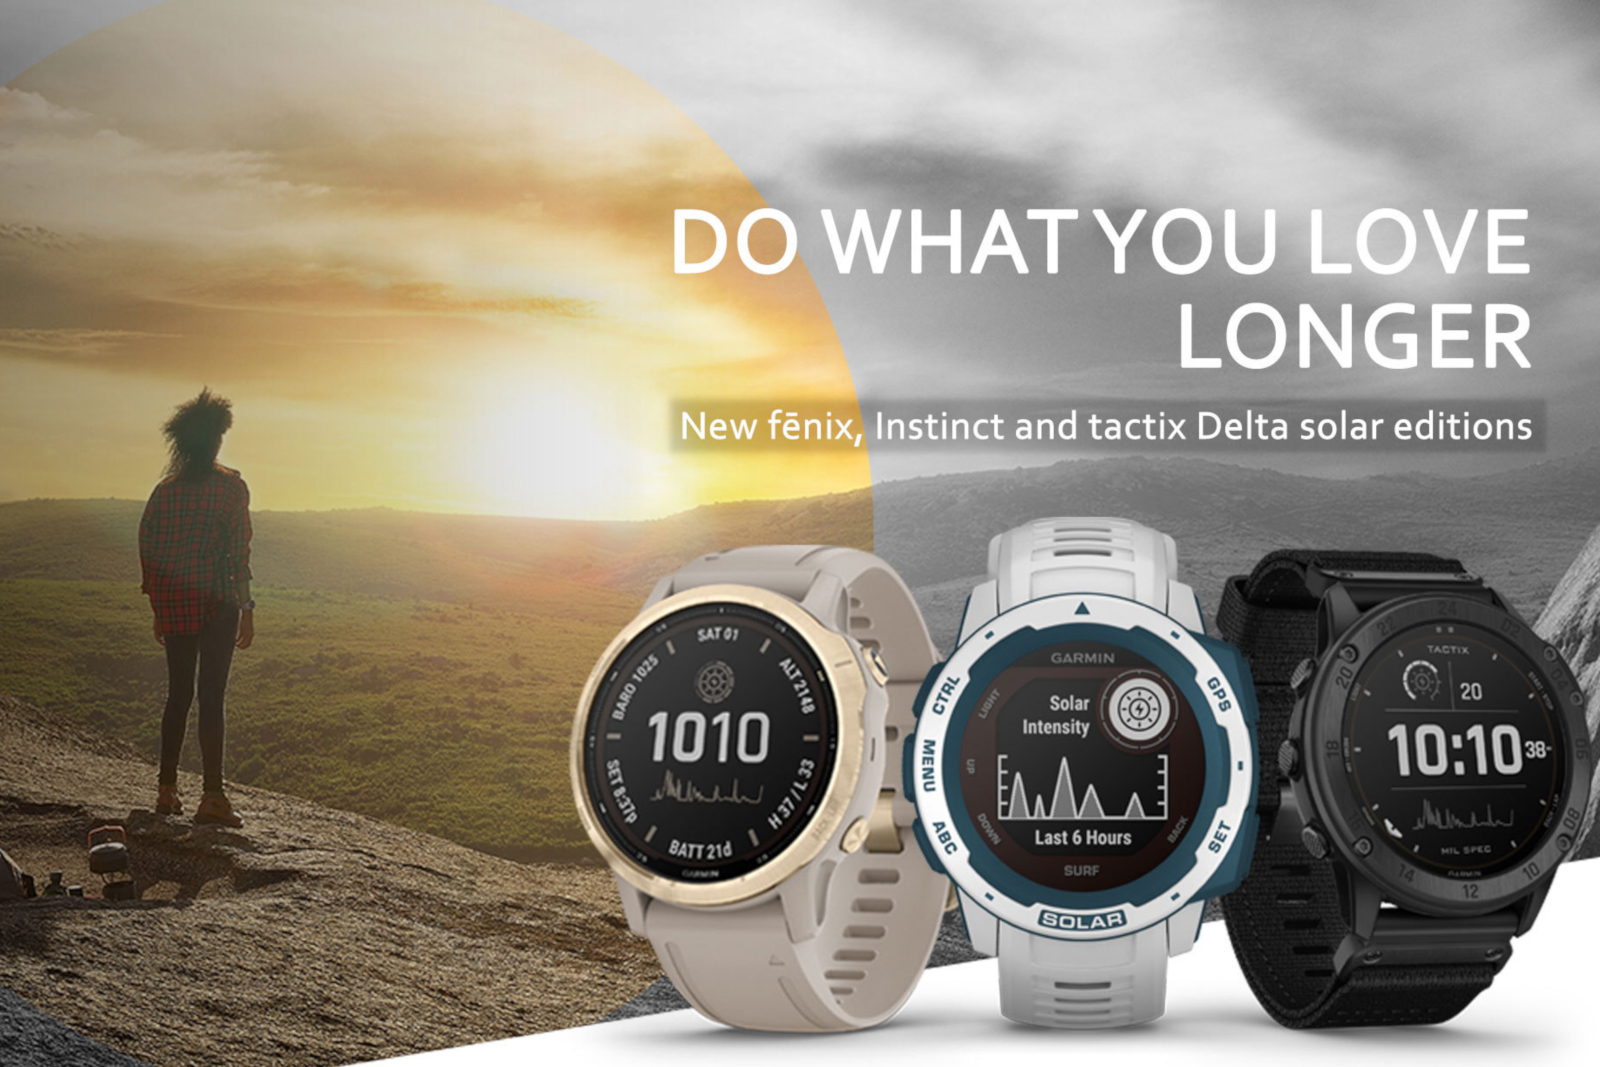 Garmin launches new old solar powered smartwatches